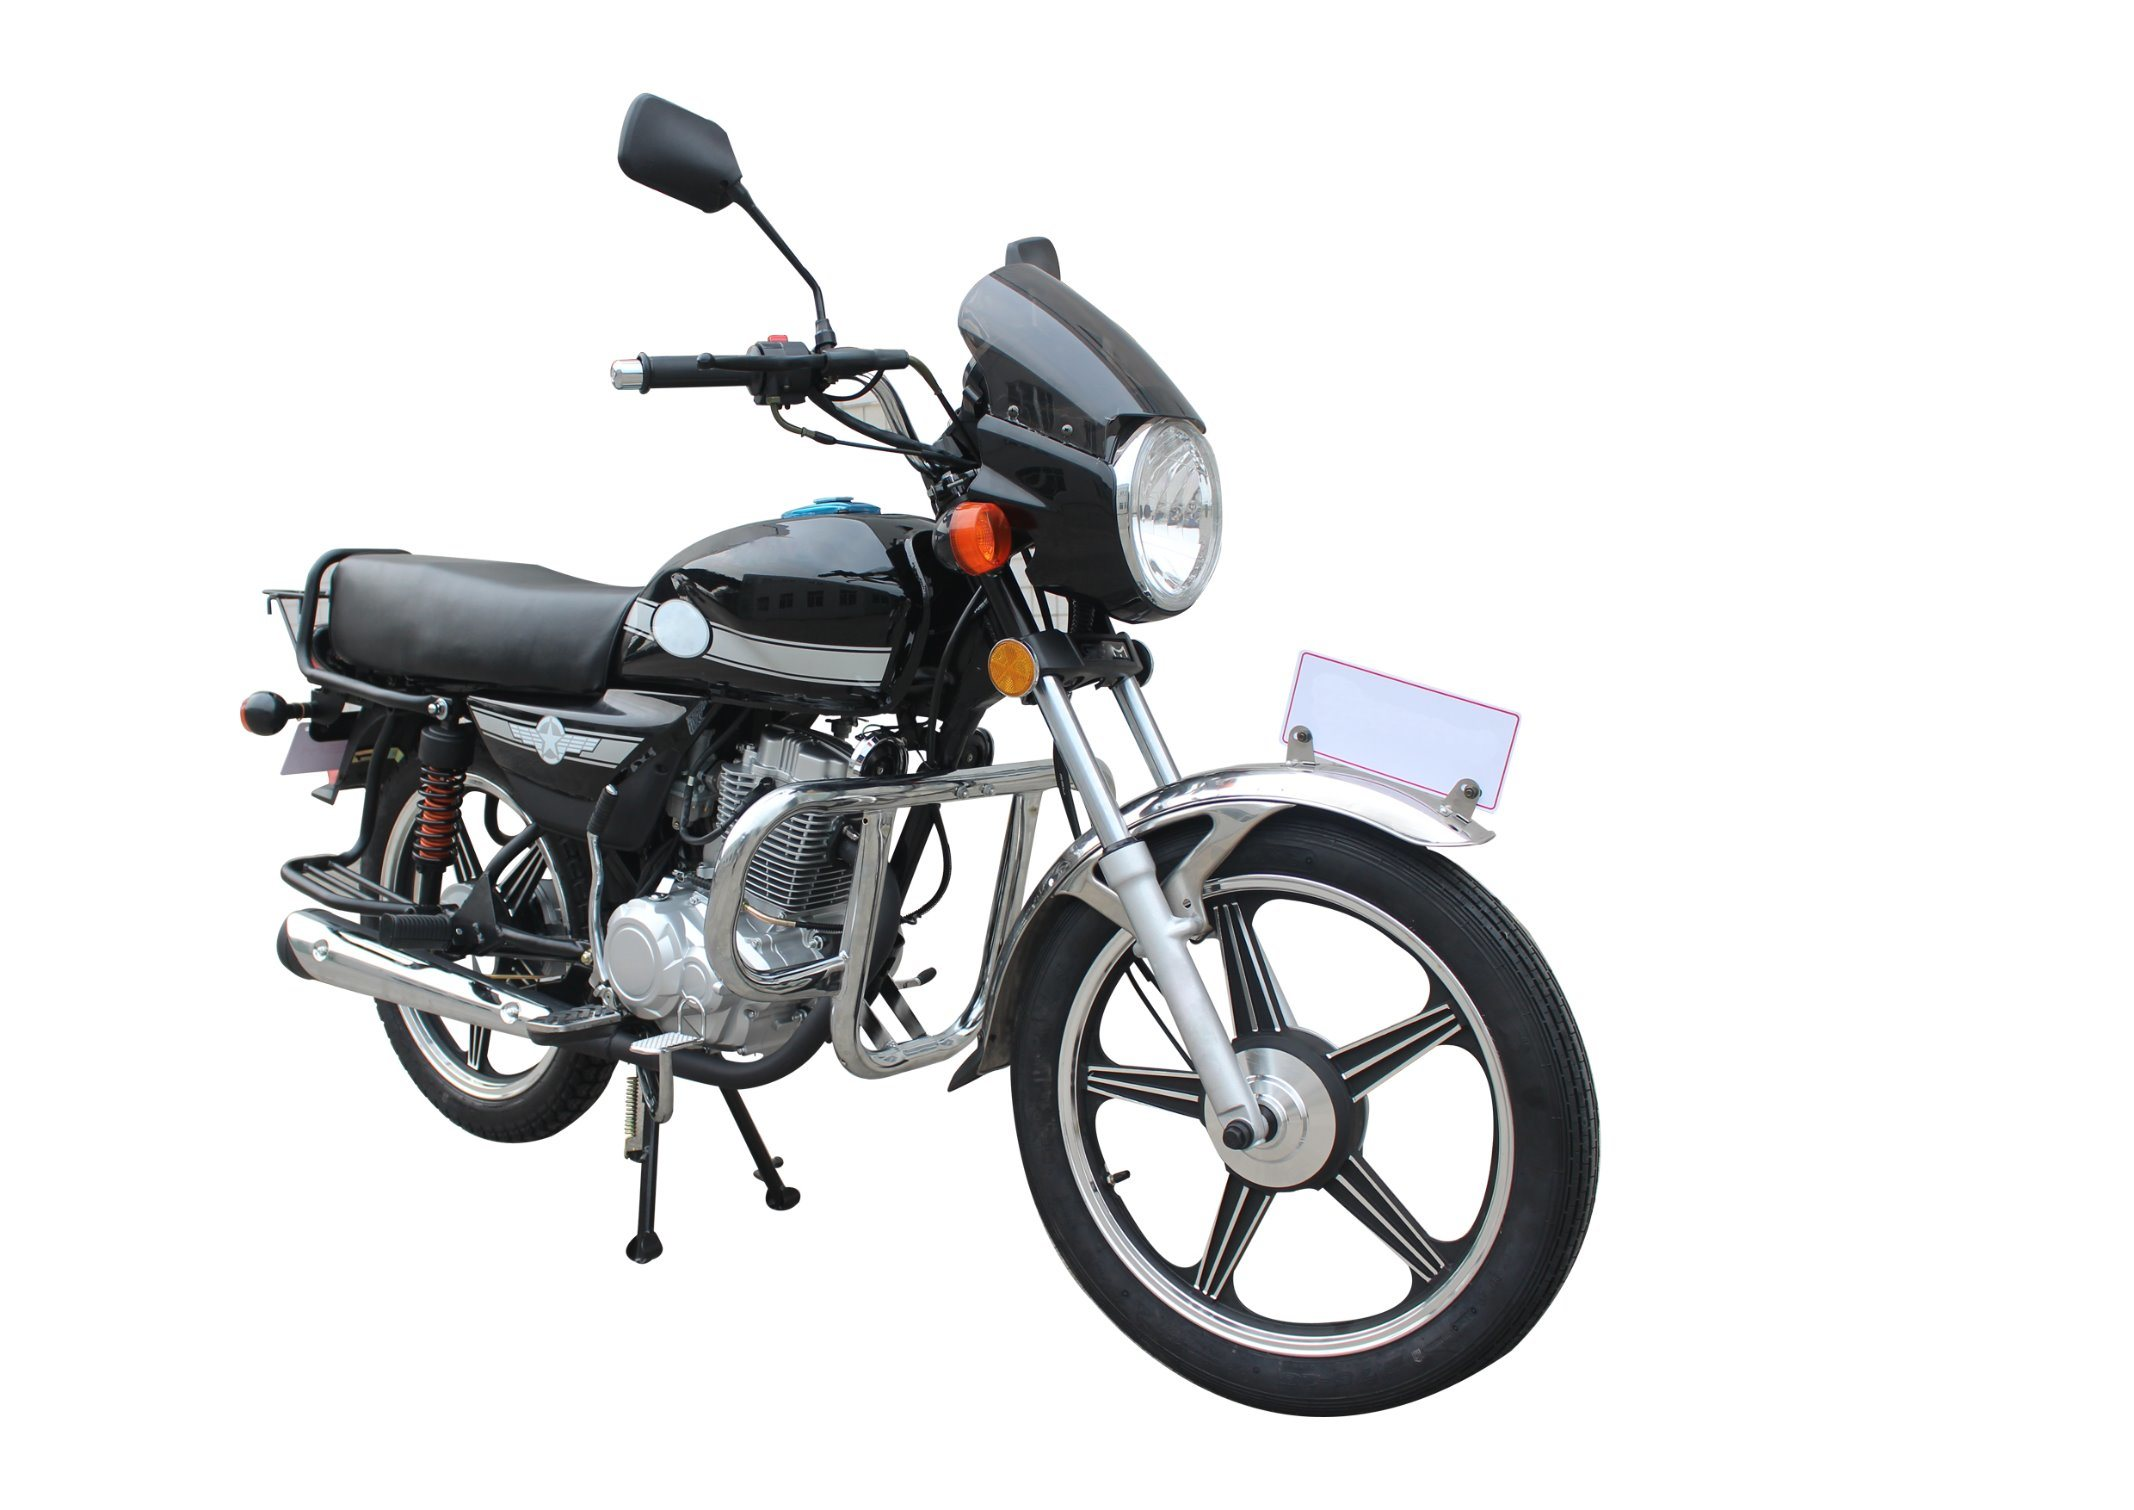 150cc Standard Motorcycle, Most Popular Motor, Three Passengers